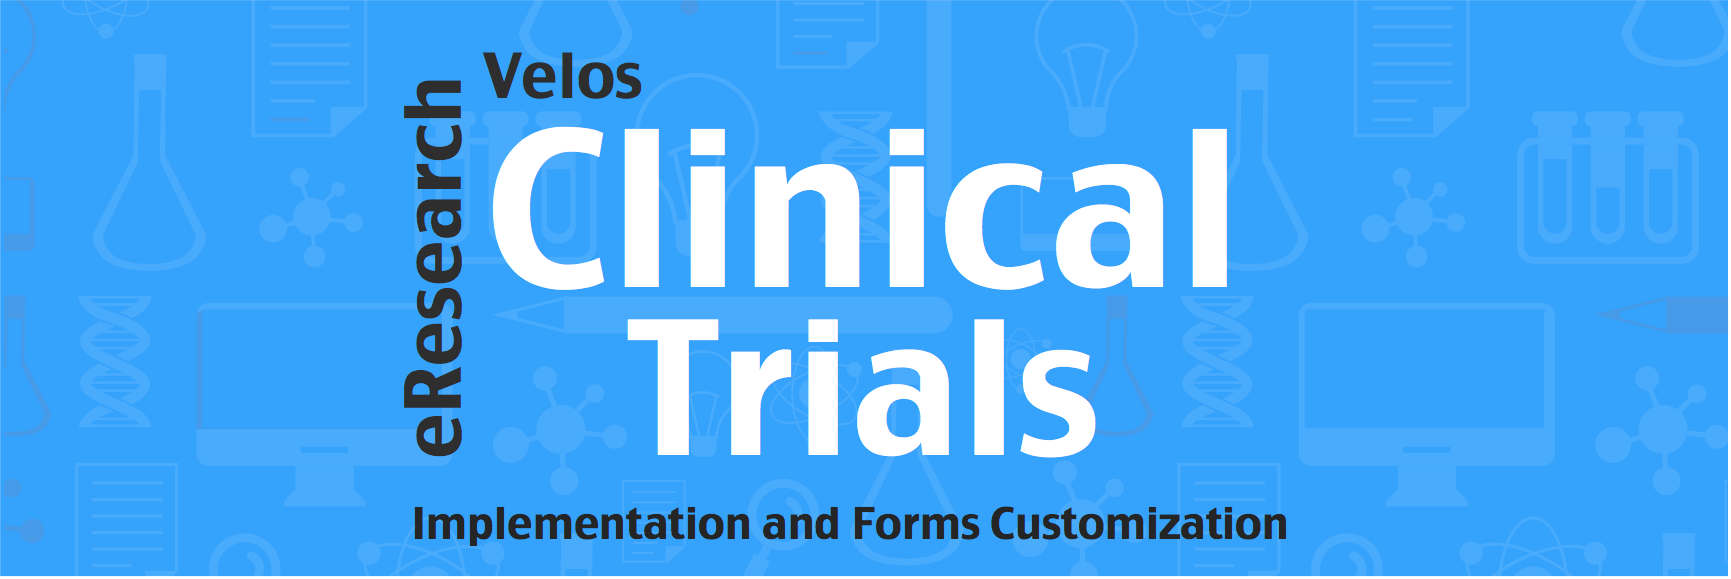 velos clinical trial